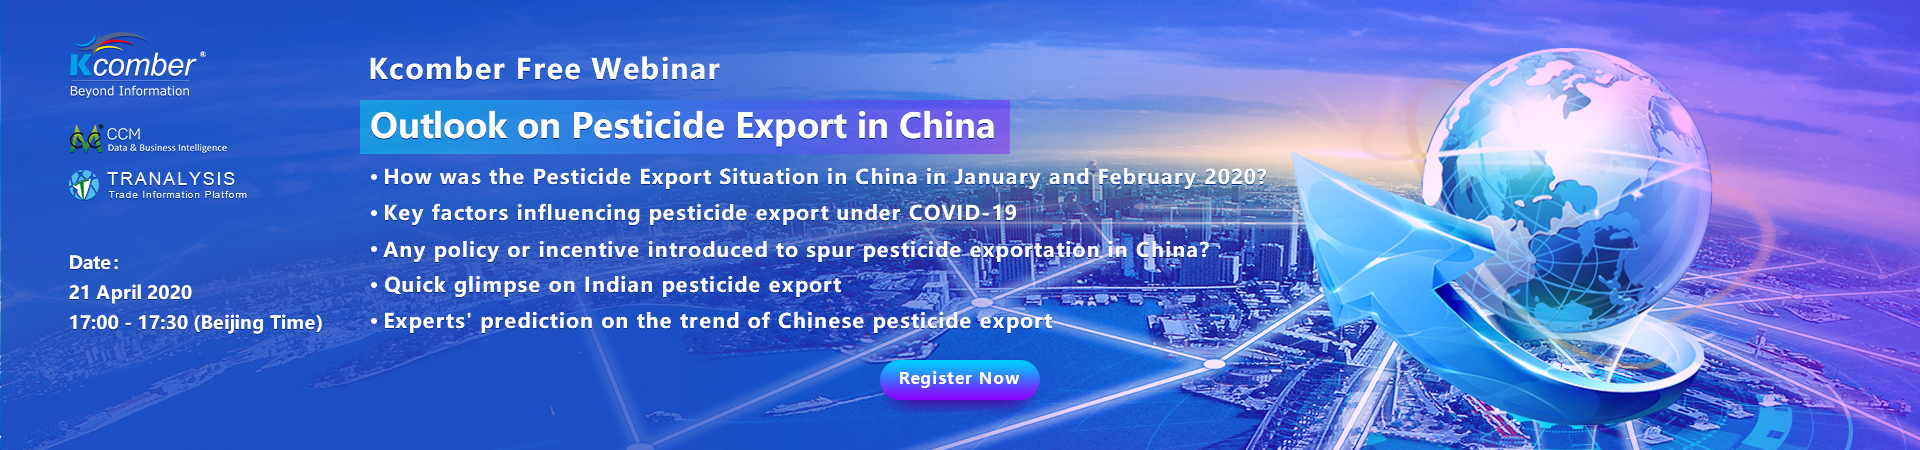 Outlook on Pesticide Export in China